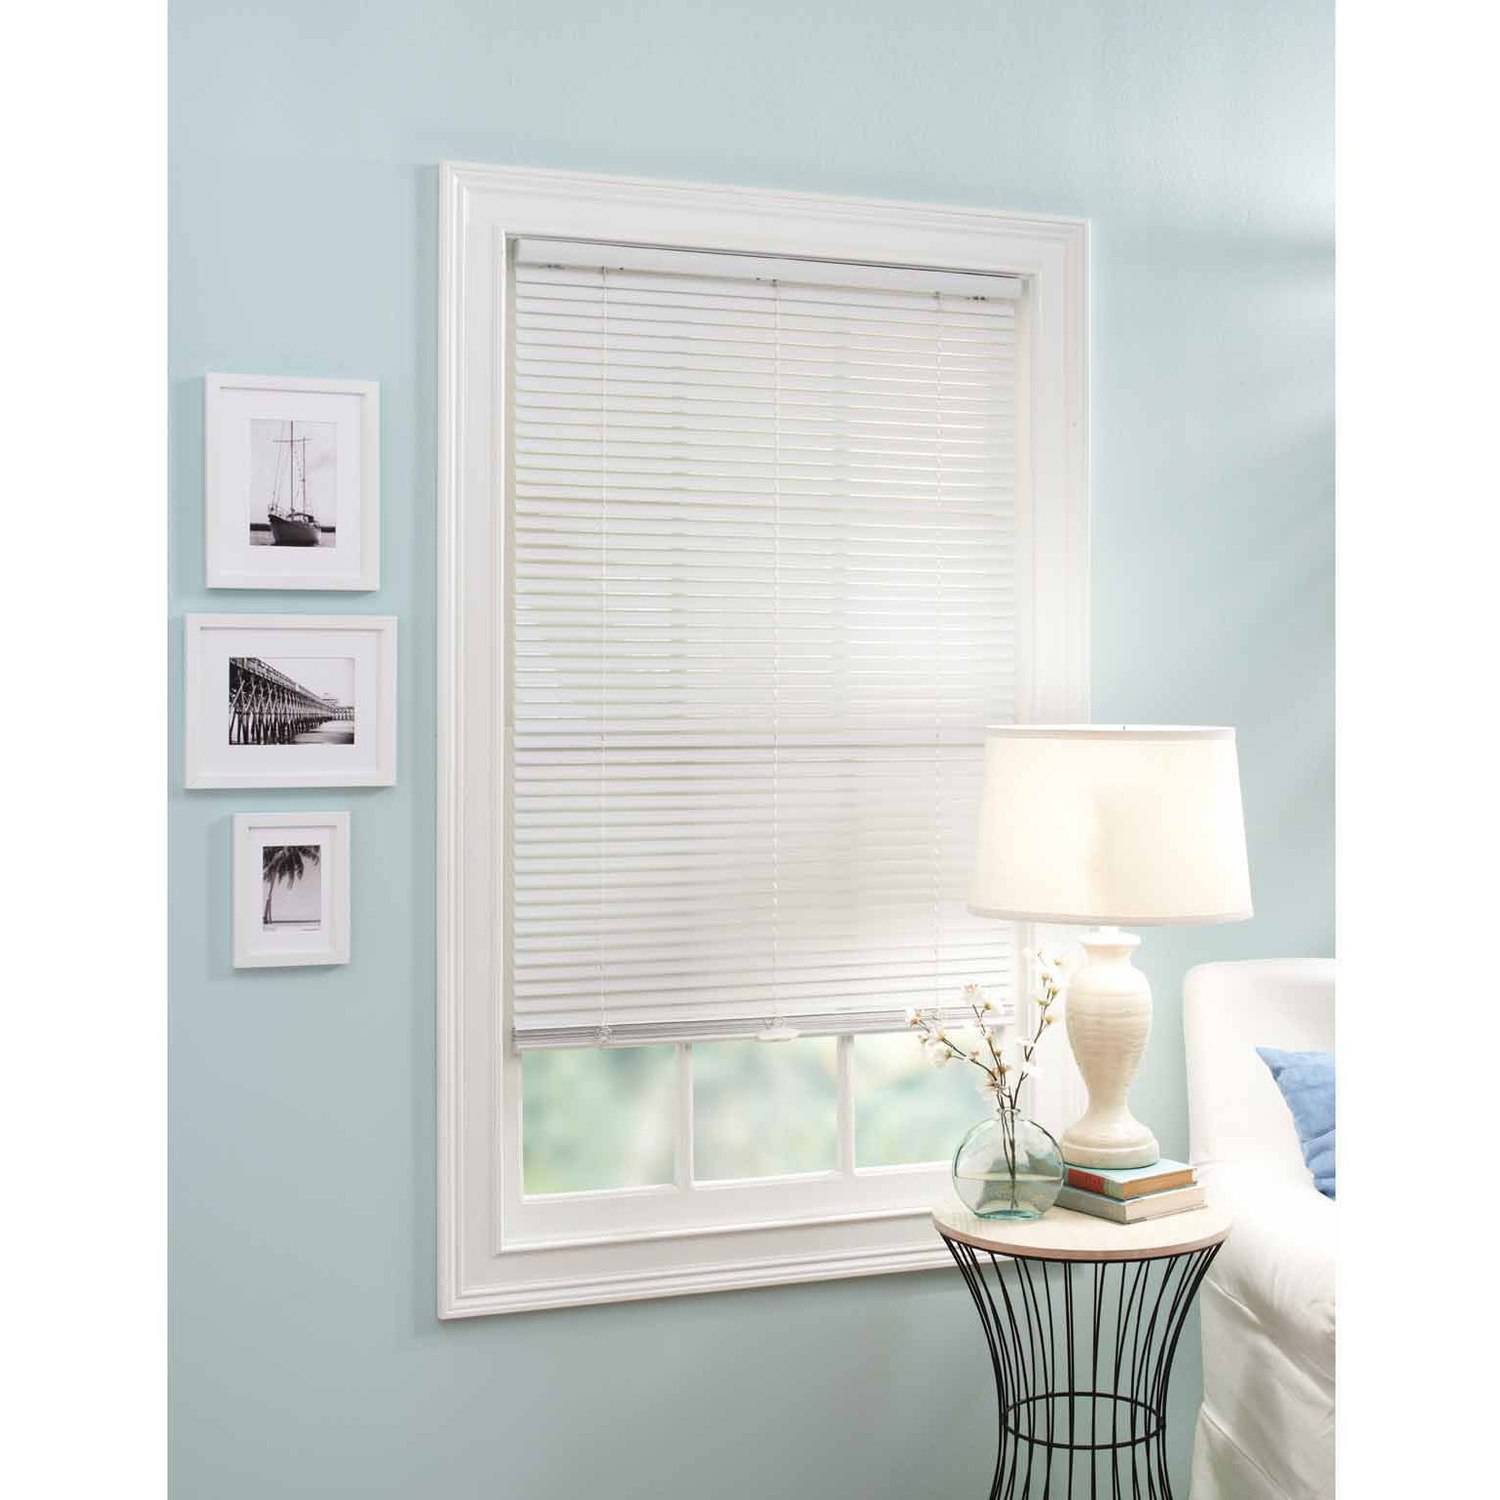 "Better Homes and Garden 1"" Vinyl Cordless Mini Blind, White"